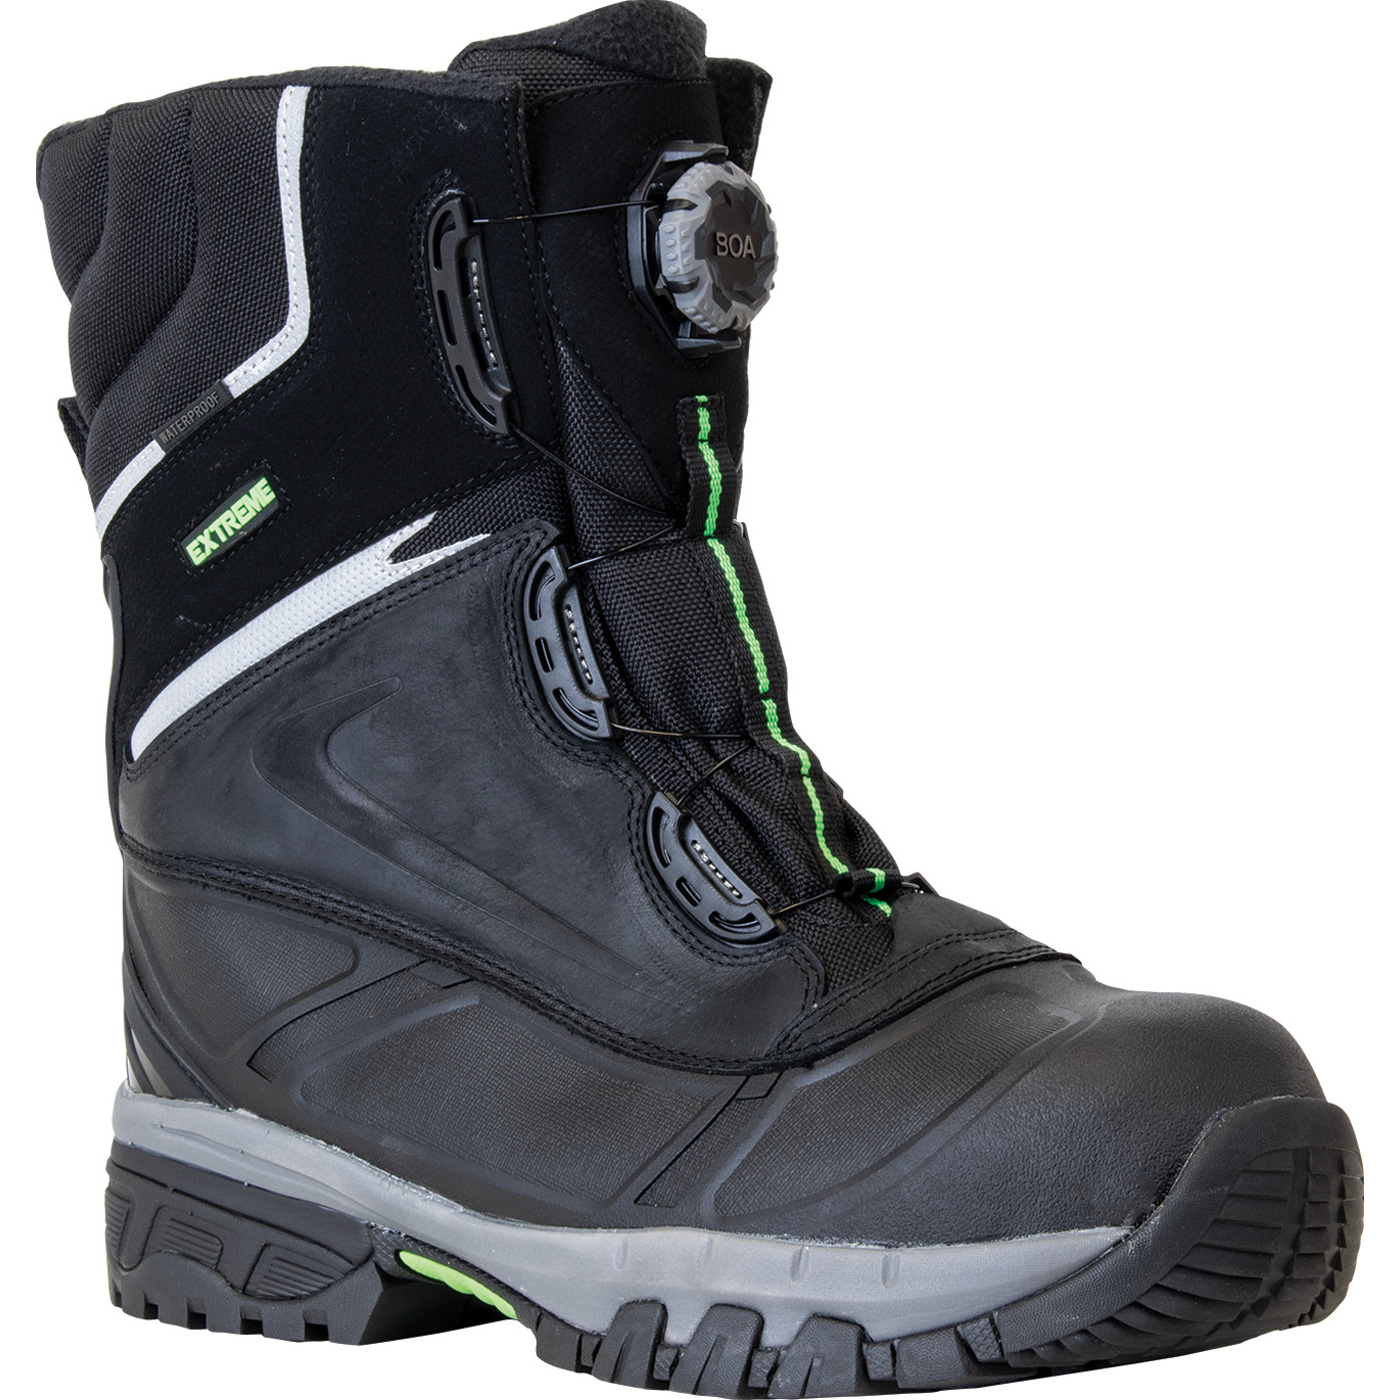 1da668f23f9 RefrigiWear Extreme Pac Men's 9 inch Composite Toe 600G Insulated  Waterproof Slip-Resistant Work Boot